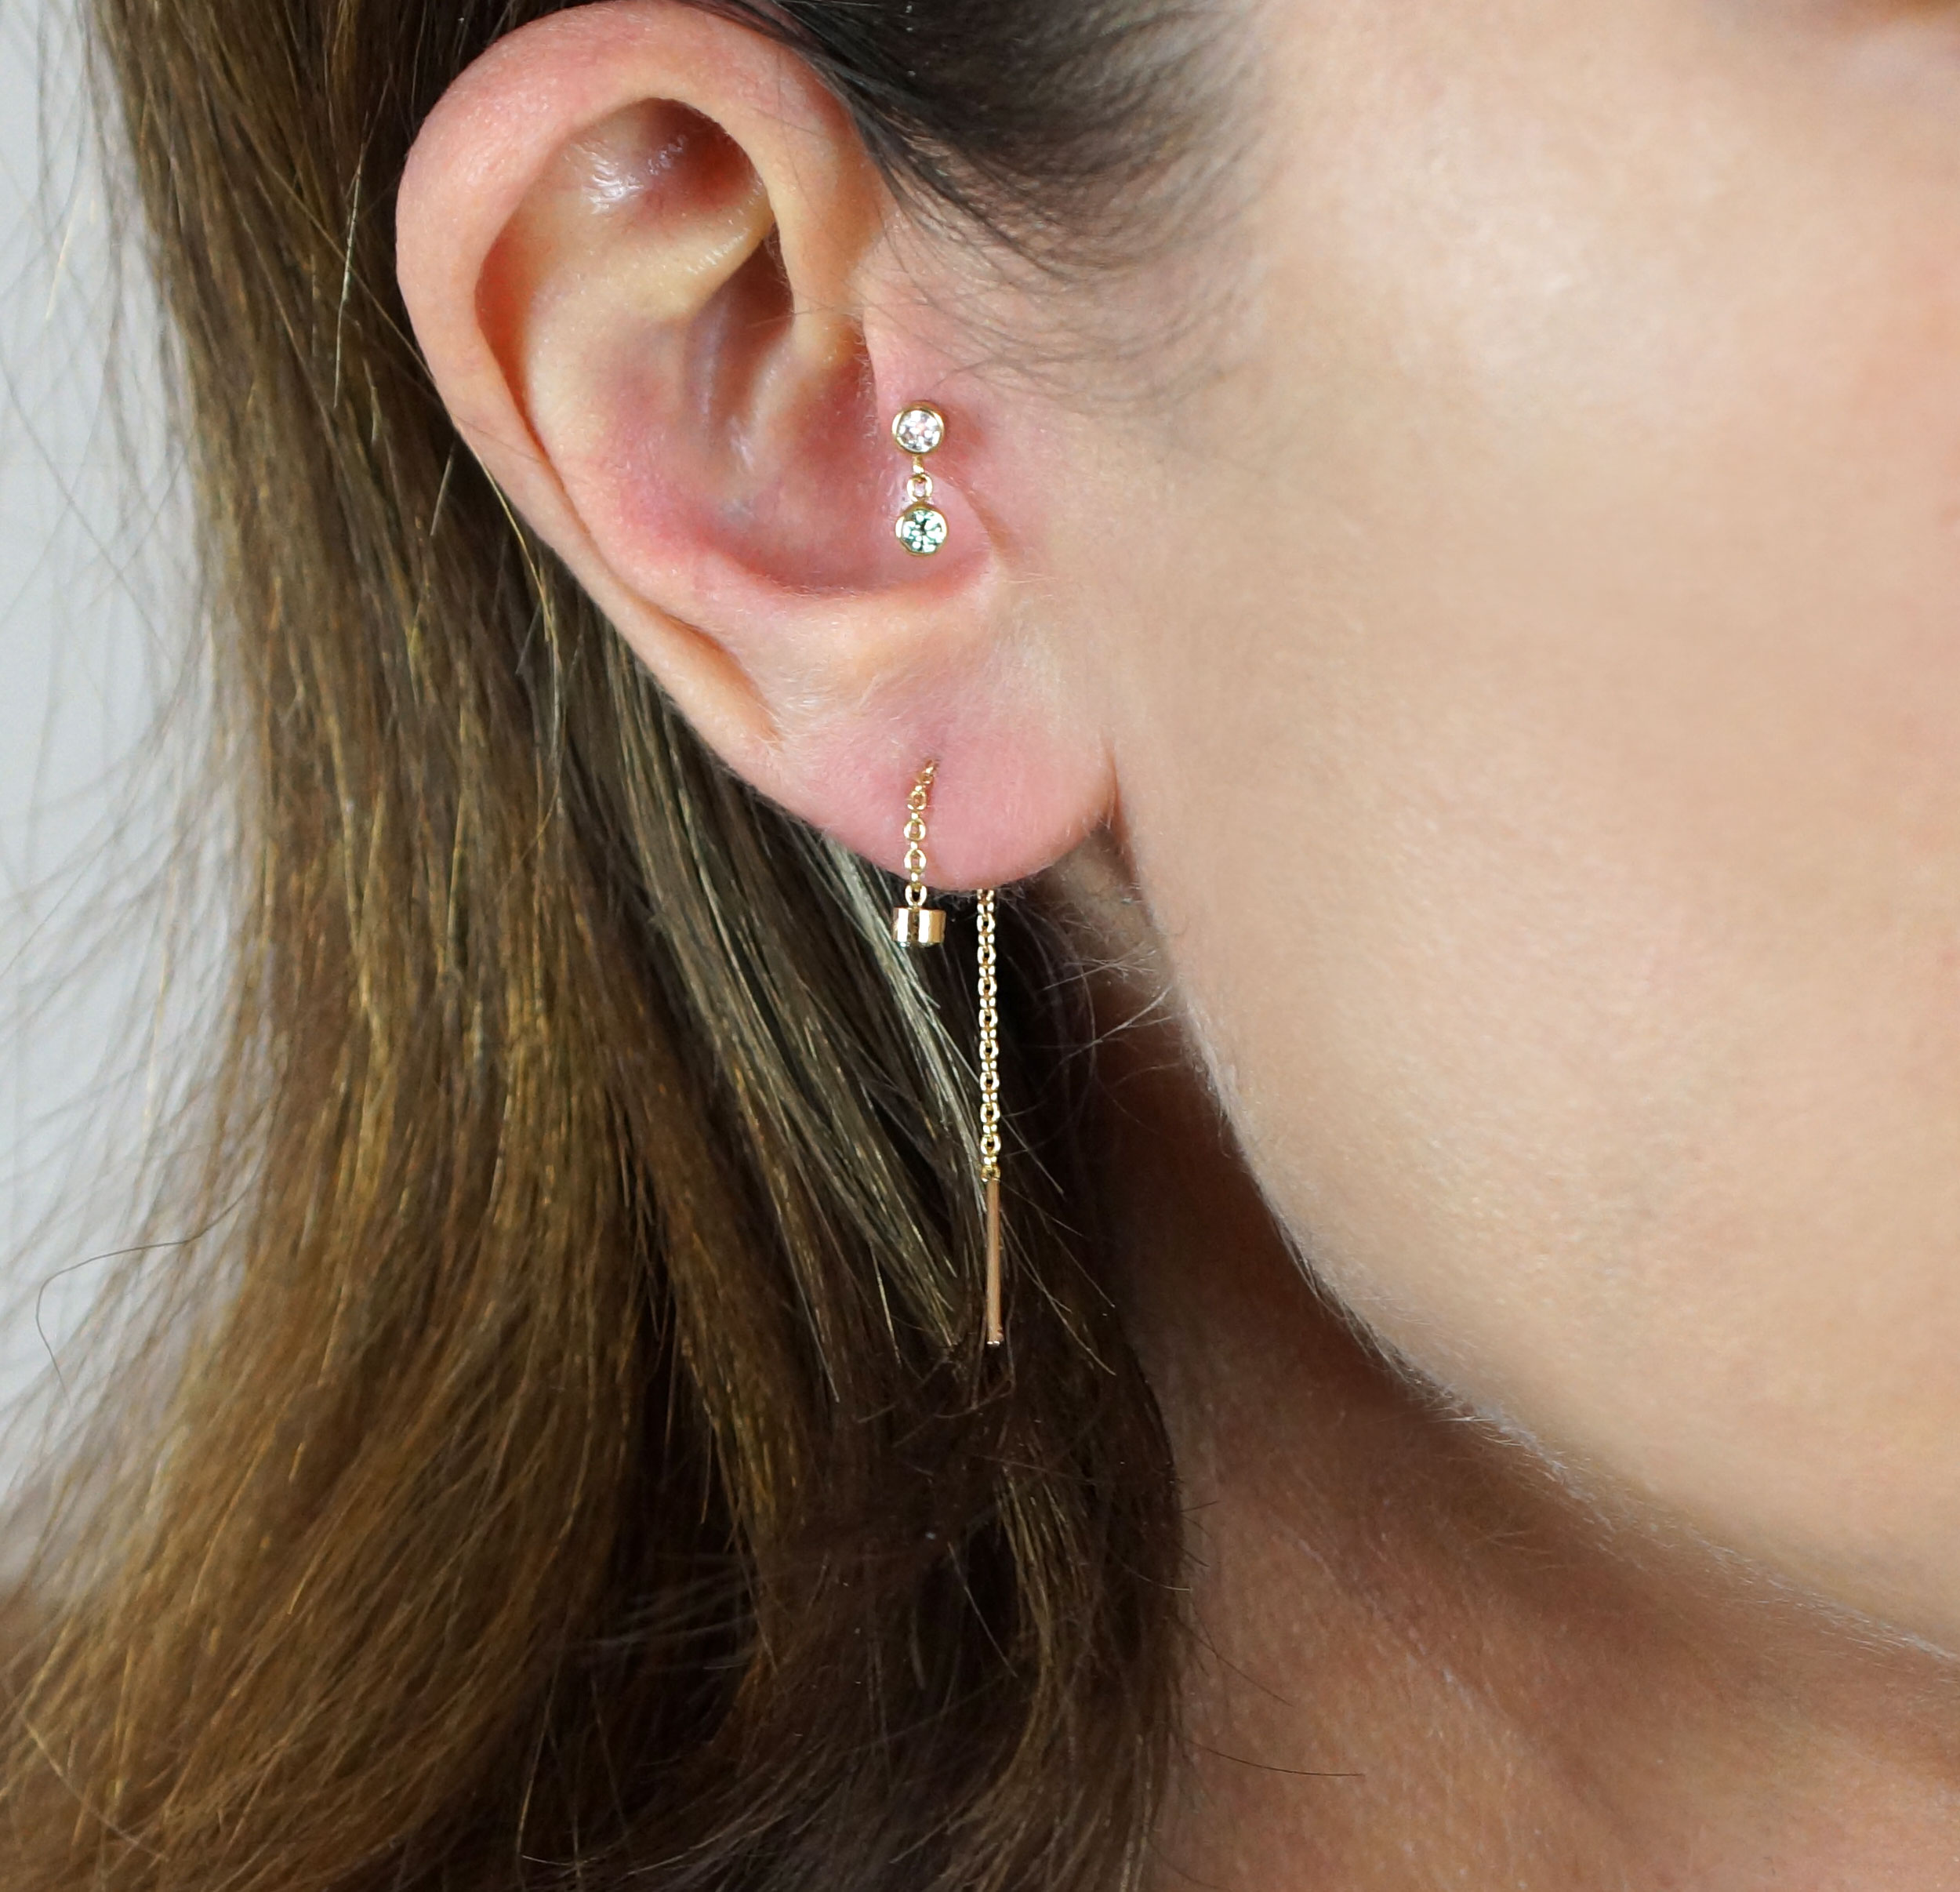 Ear Styling by Lena Cohen Fine Jewellery Buy 18k gold luxury piercings for #tragus, #helix, #daith, #cartilage, #earlobe. Made in London. Free shipping on all orders!‬